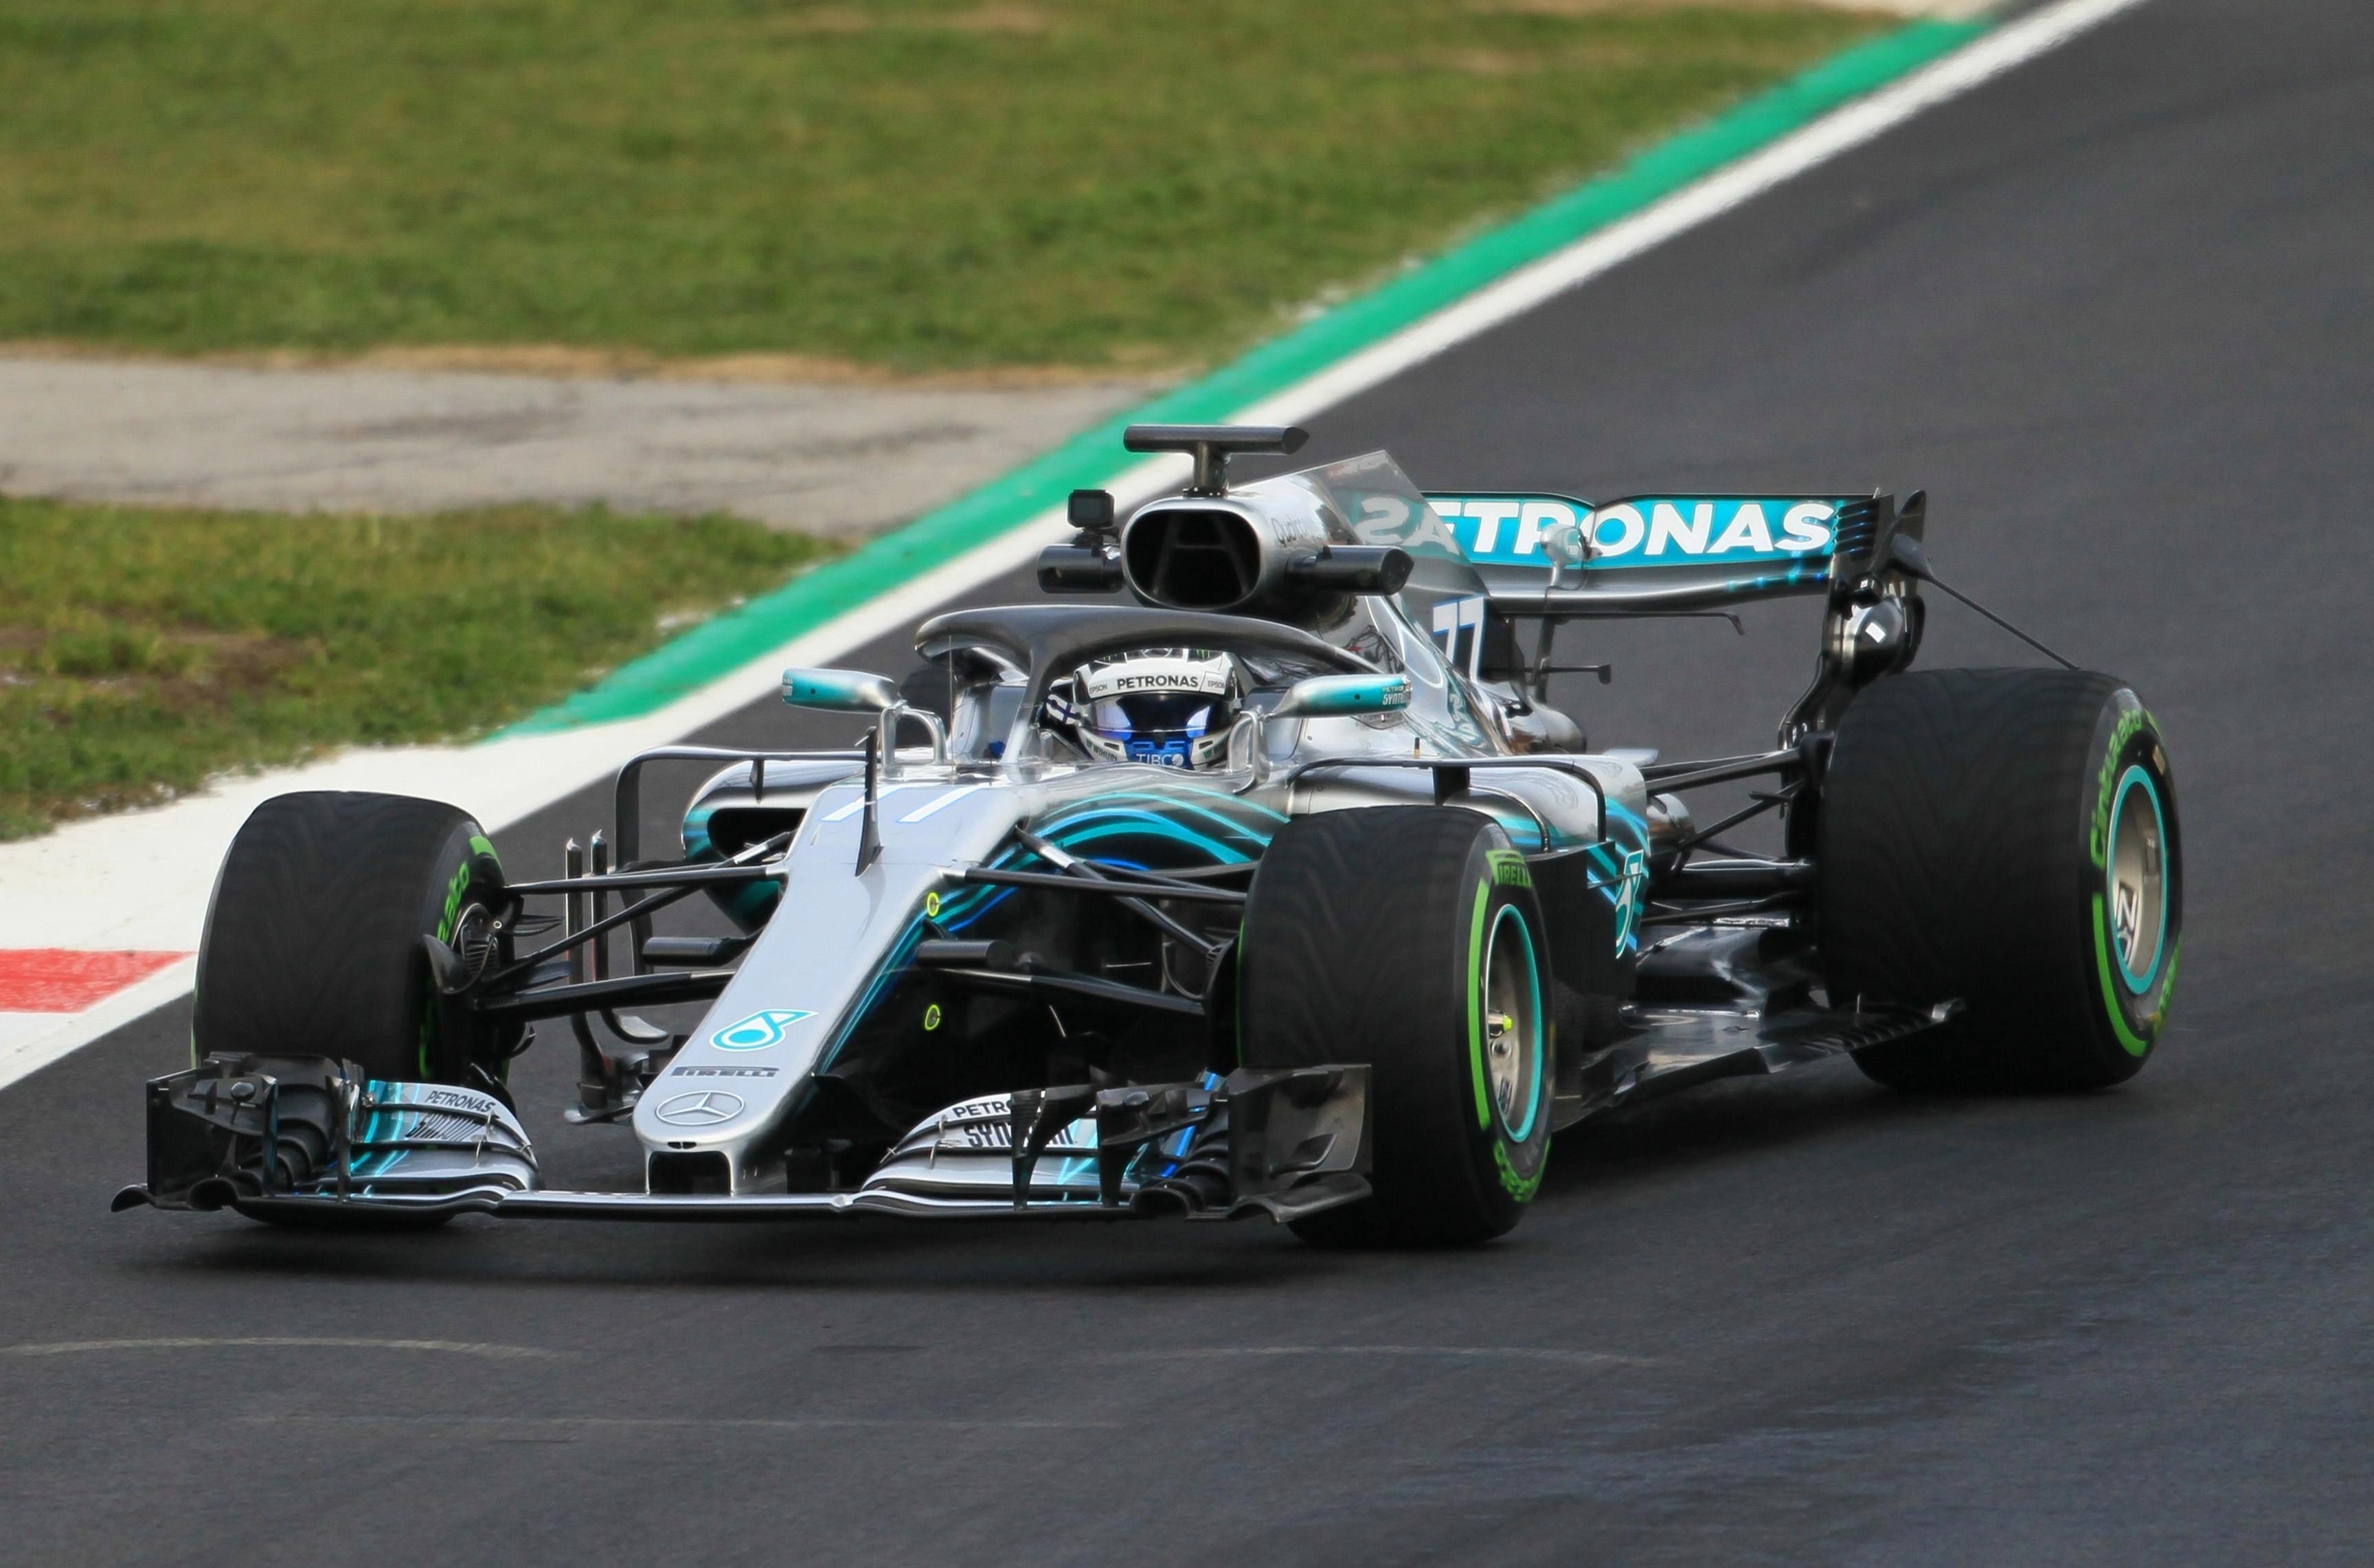 Hamilton's Mercedes partner Valtteri Bottas as racked up 152 laps in the car